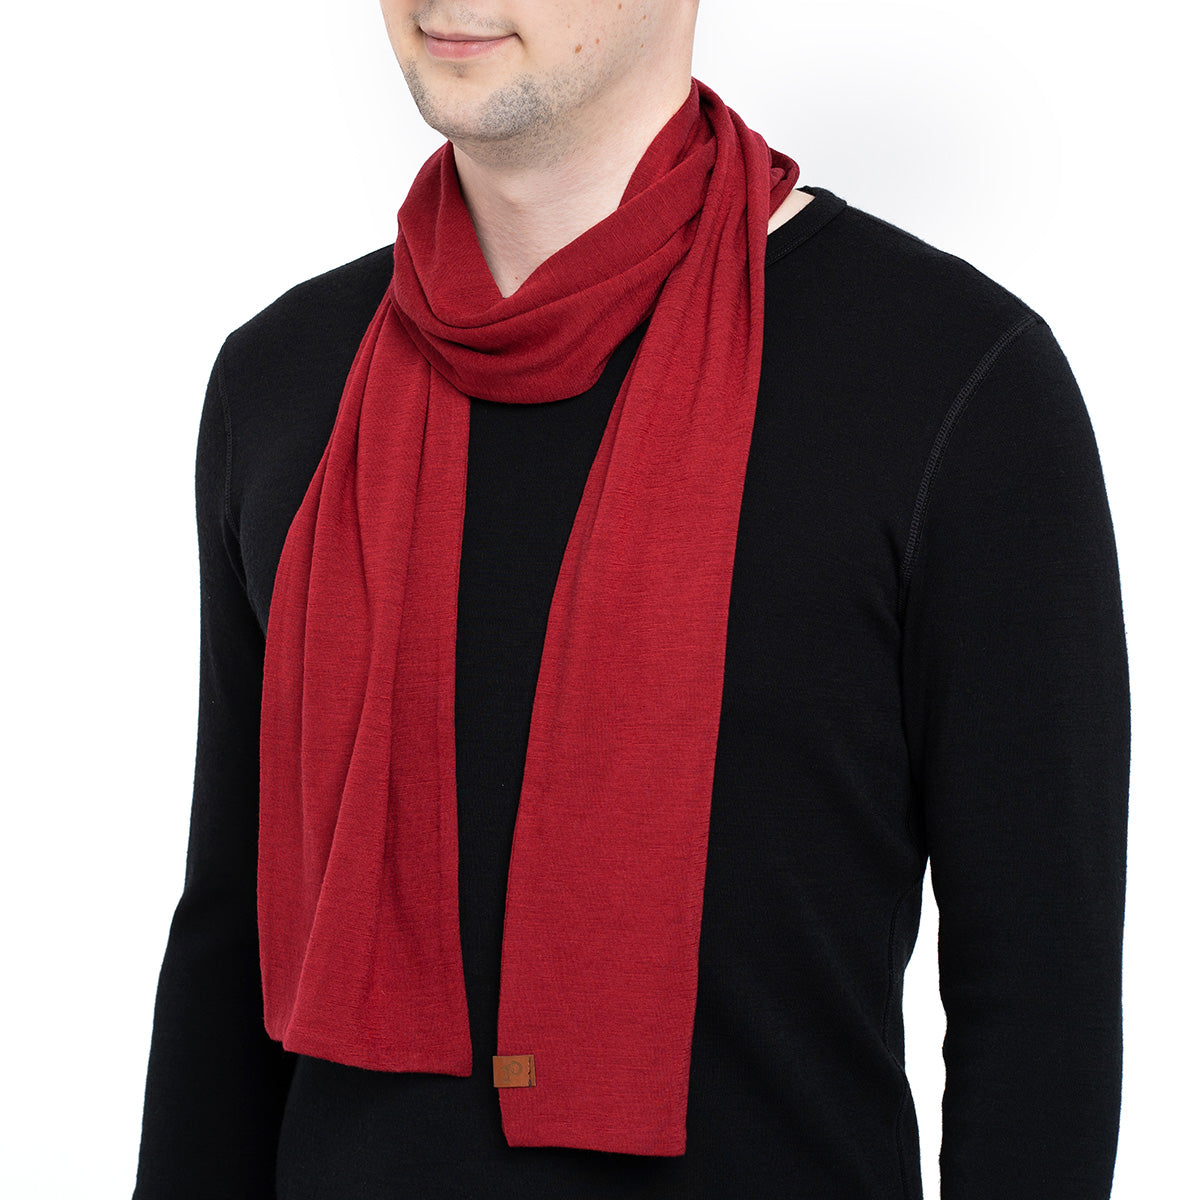 menique Men's Merino Scarf Royal Cherry Color